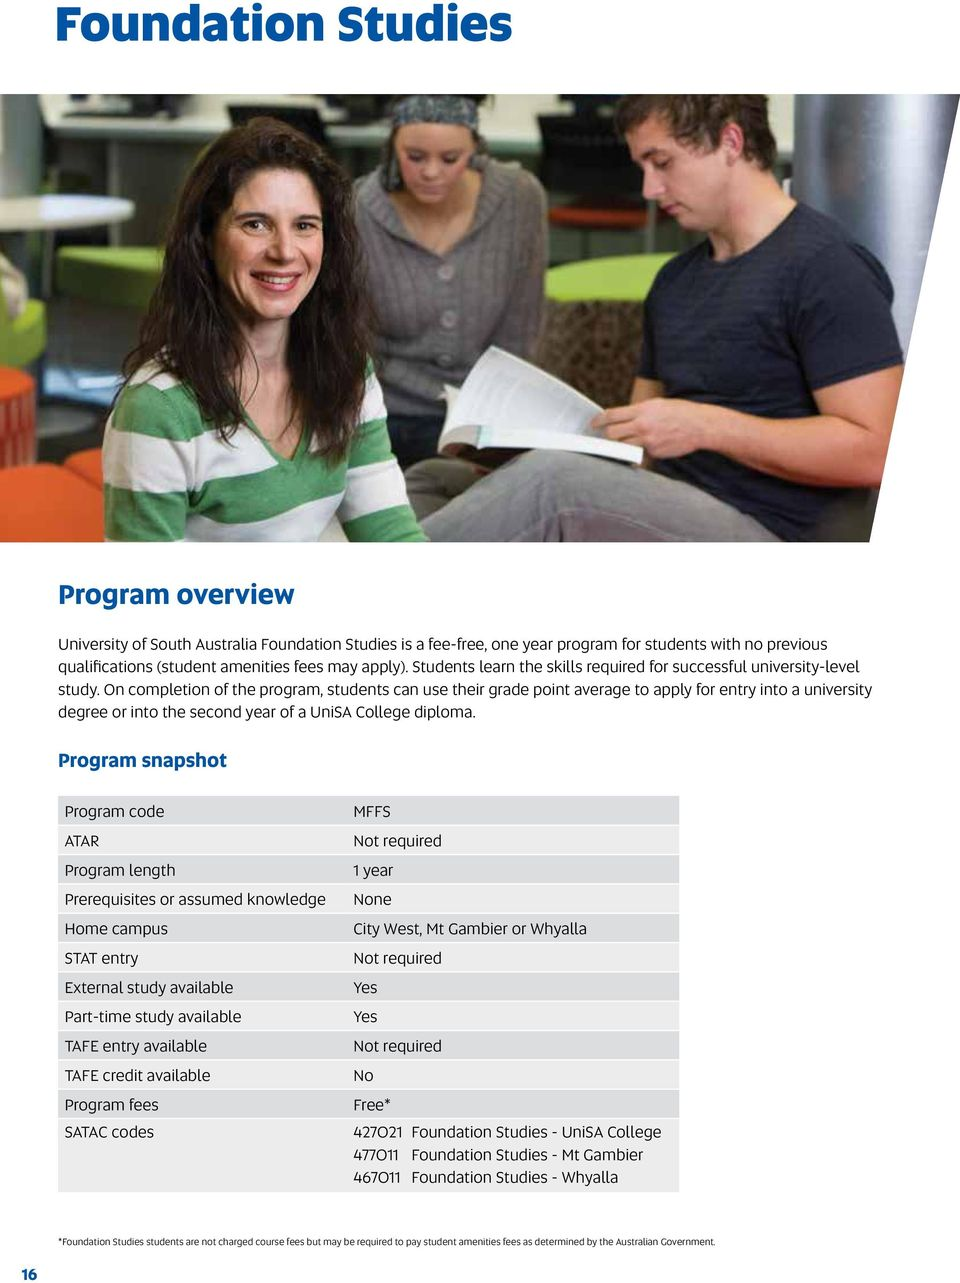 On completion of the program, students can use their grade point average to apply for entry into a university degree or into the second year of a UniSA College diploma.